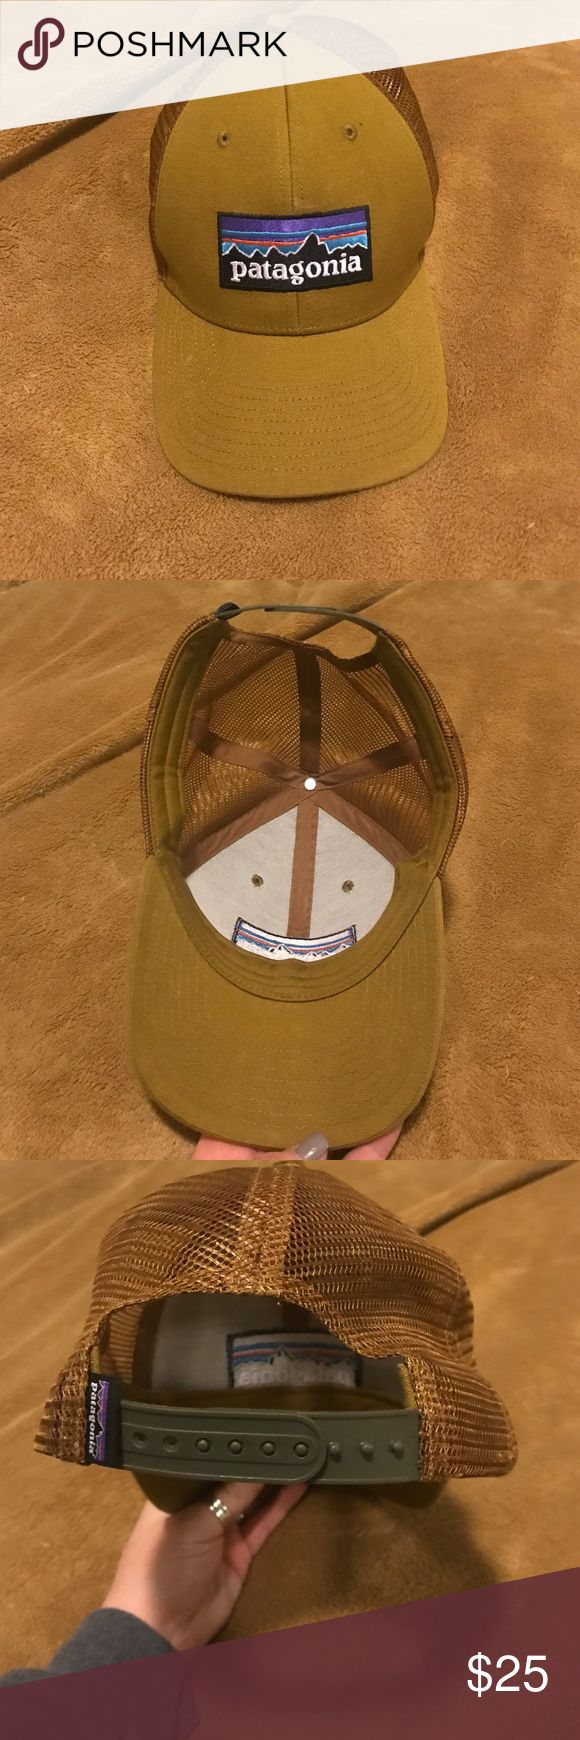 Patagonia mustard color snap back hat Mustard color Patagonia SnapBack hat! Never worn. Patagonia Accessories Hats